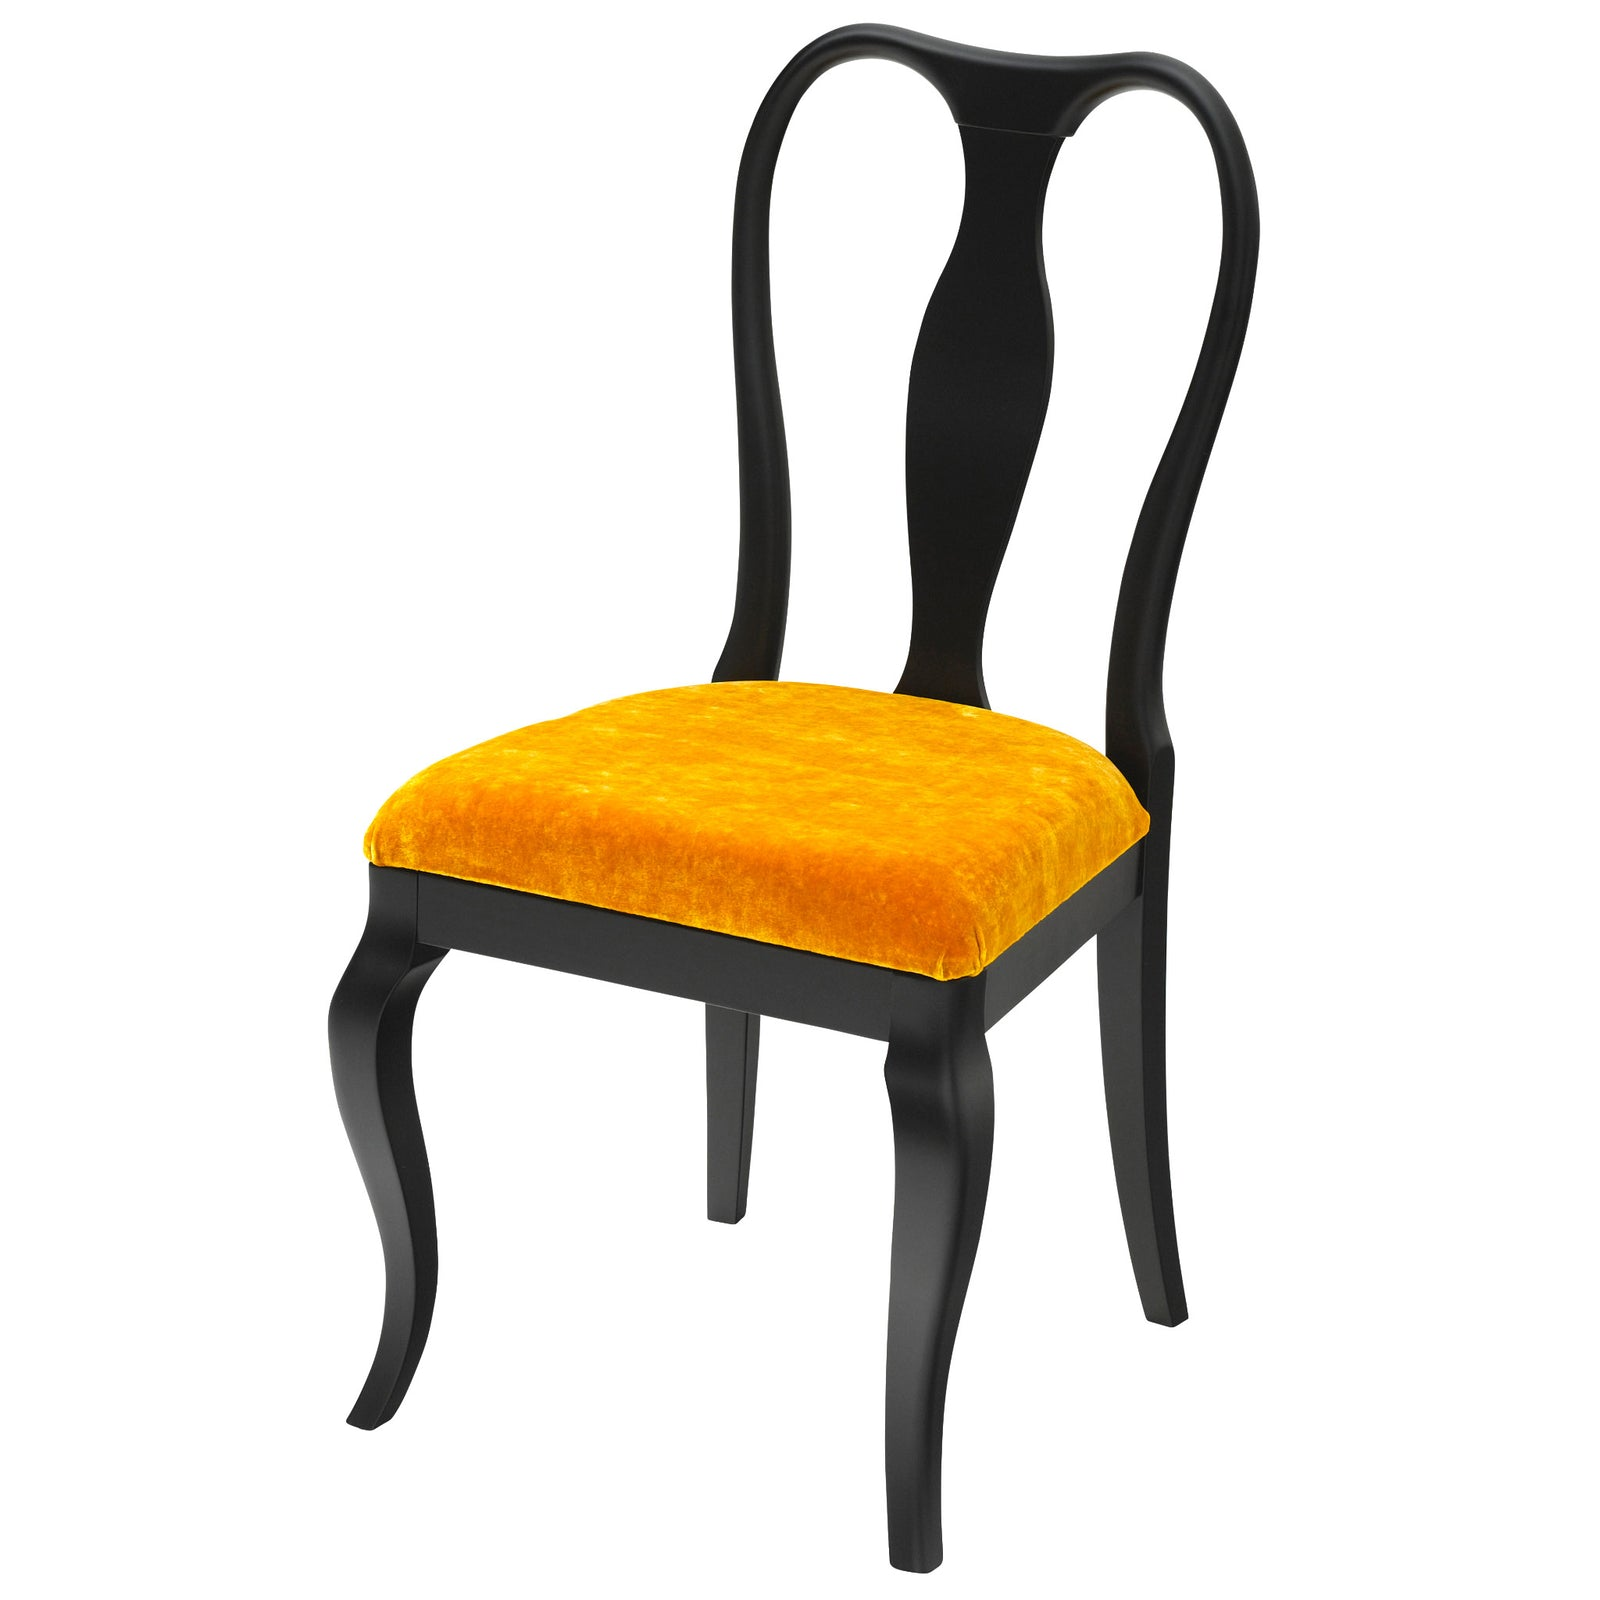 The Marco Side Chair Upholstered in Keats Gold Luxurious Velvet, matt black finish